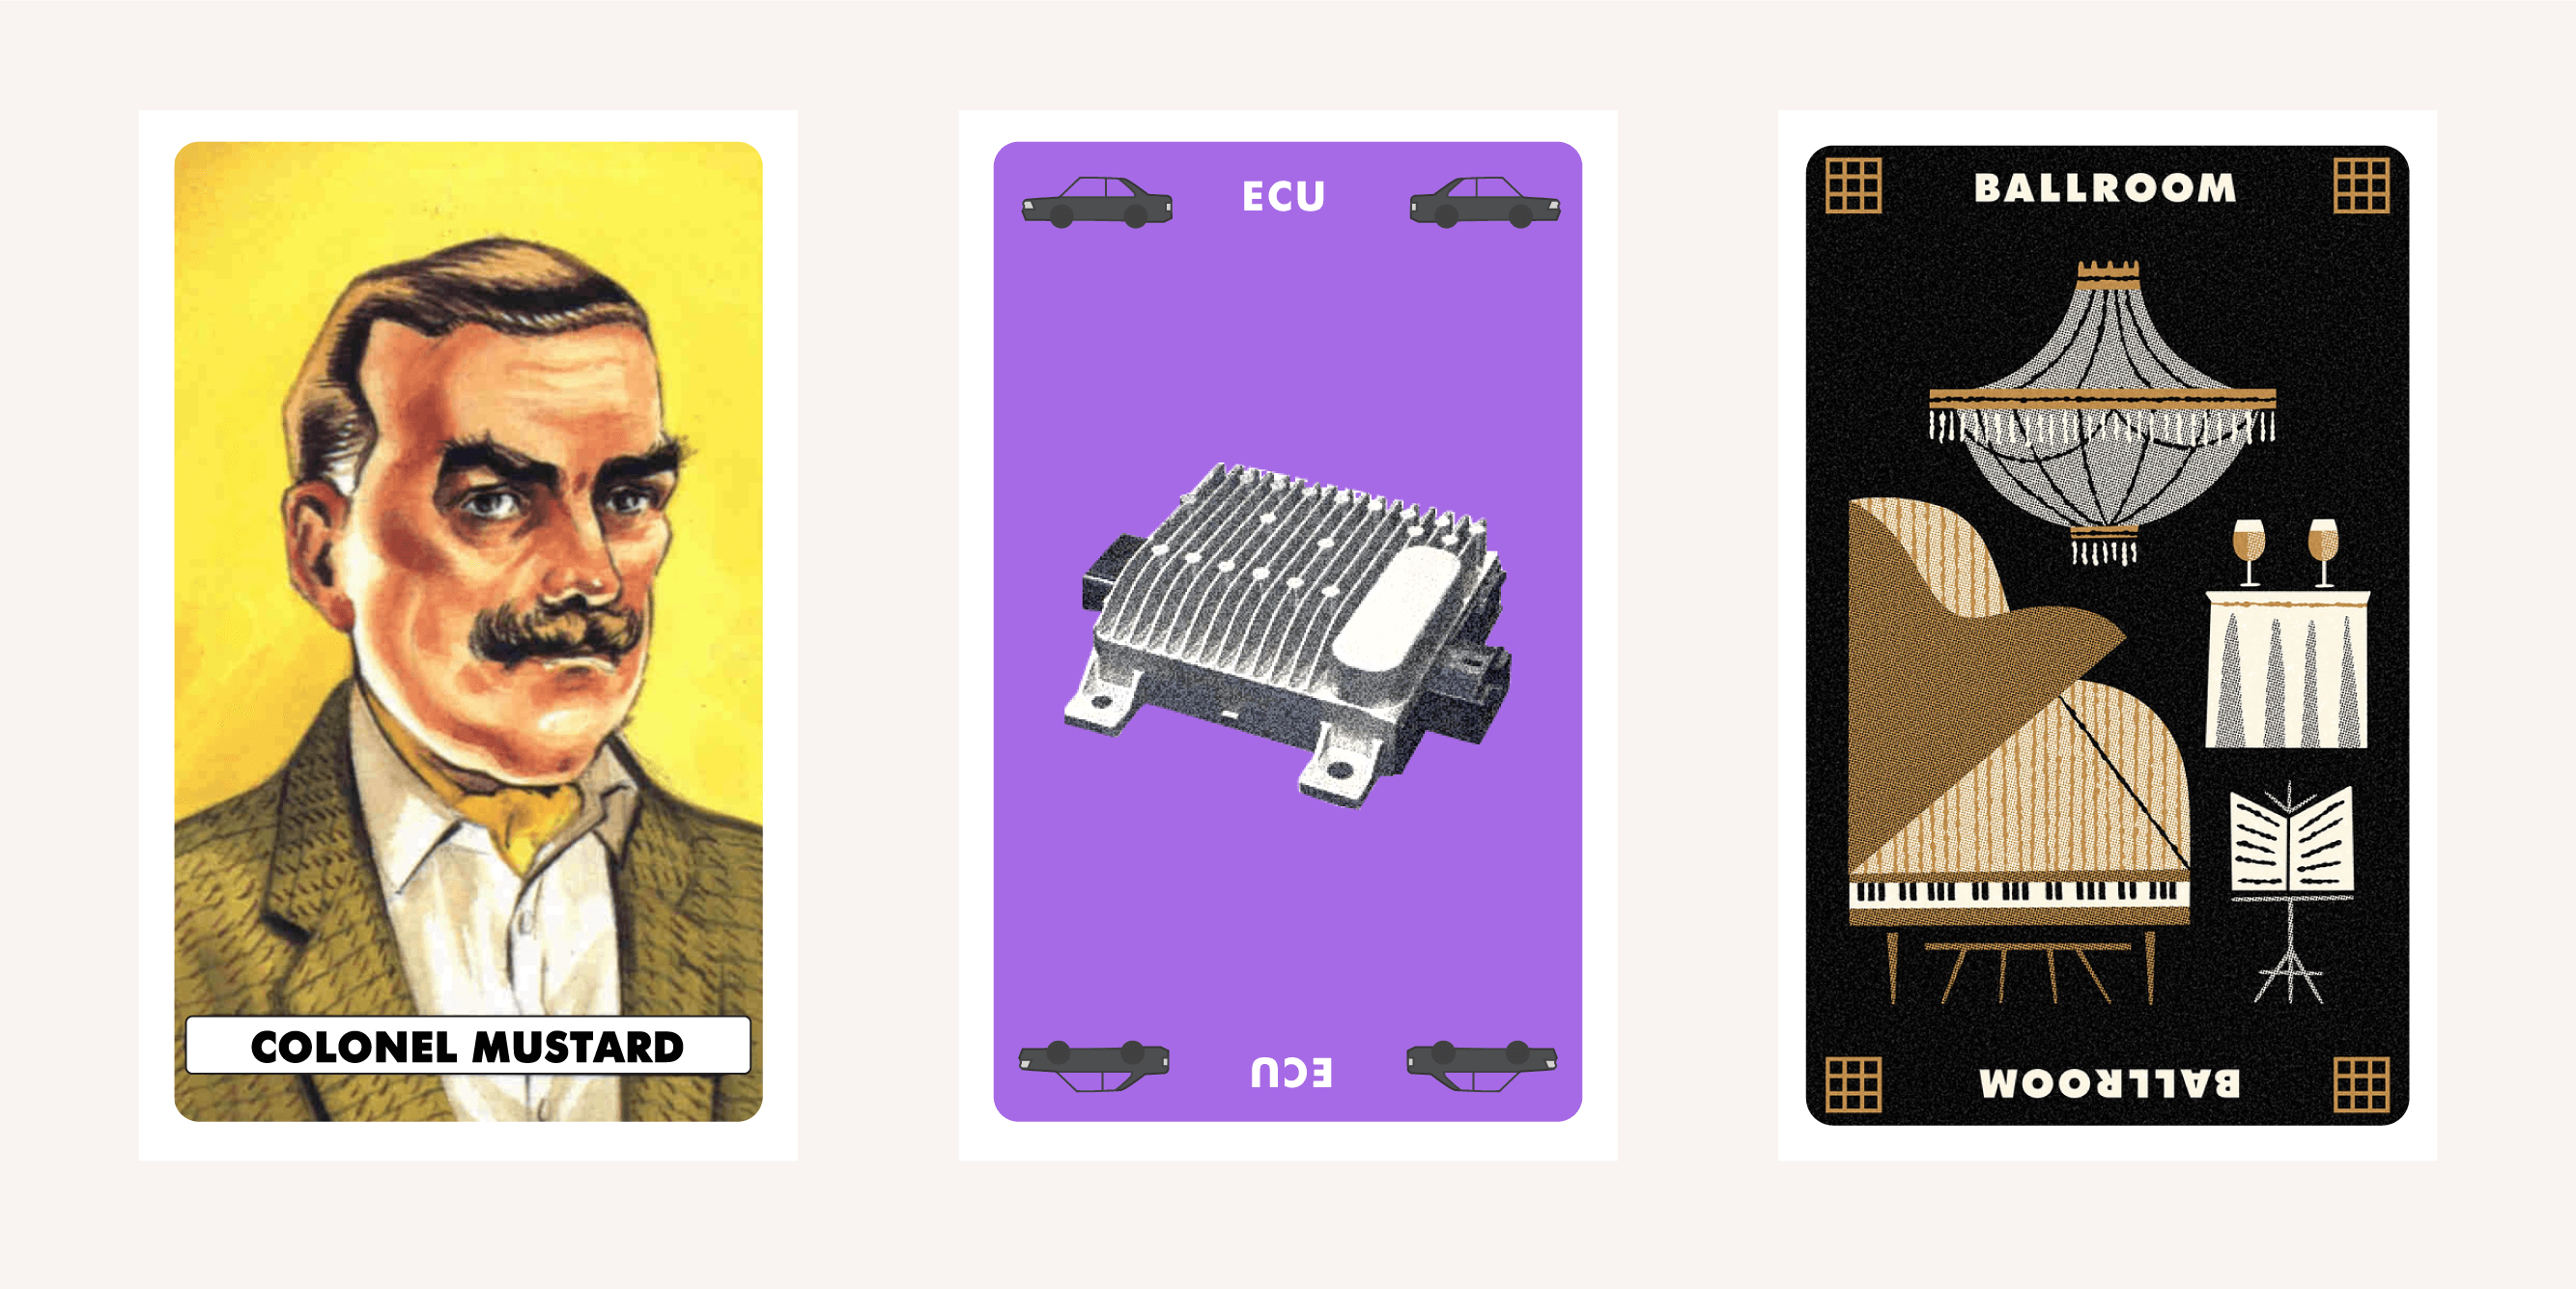 Graphic of Clue cards showing the solution: Colonel Mustard with an ECU in the Ballroom